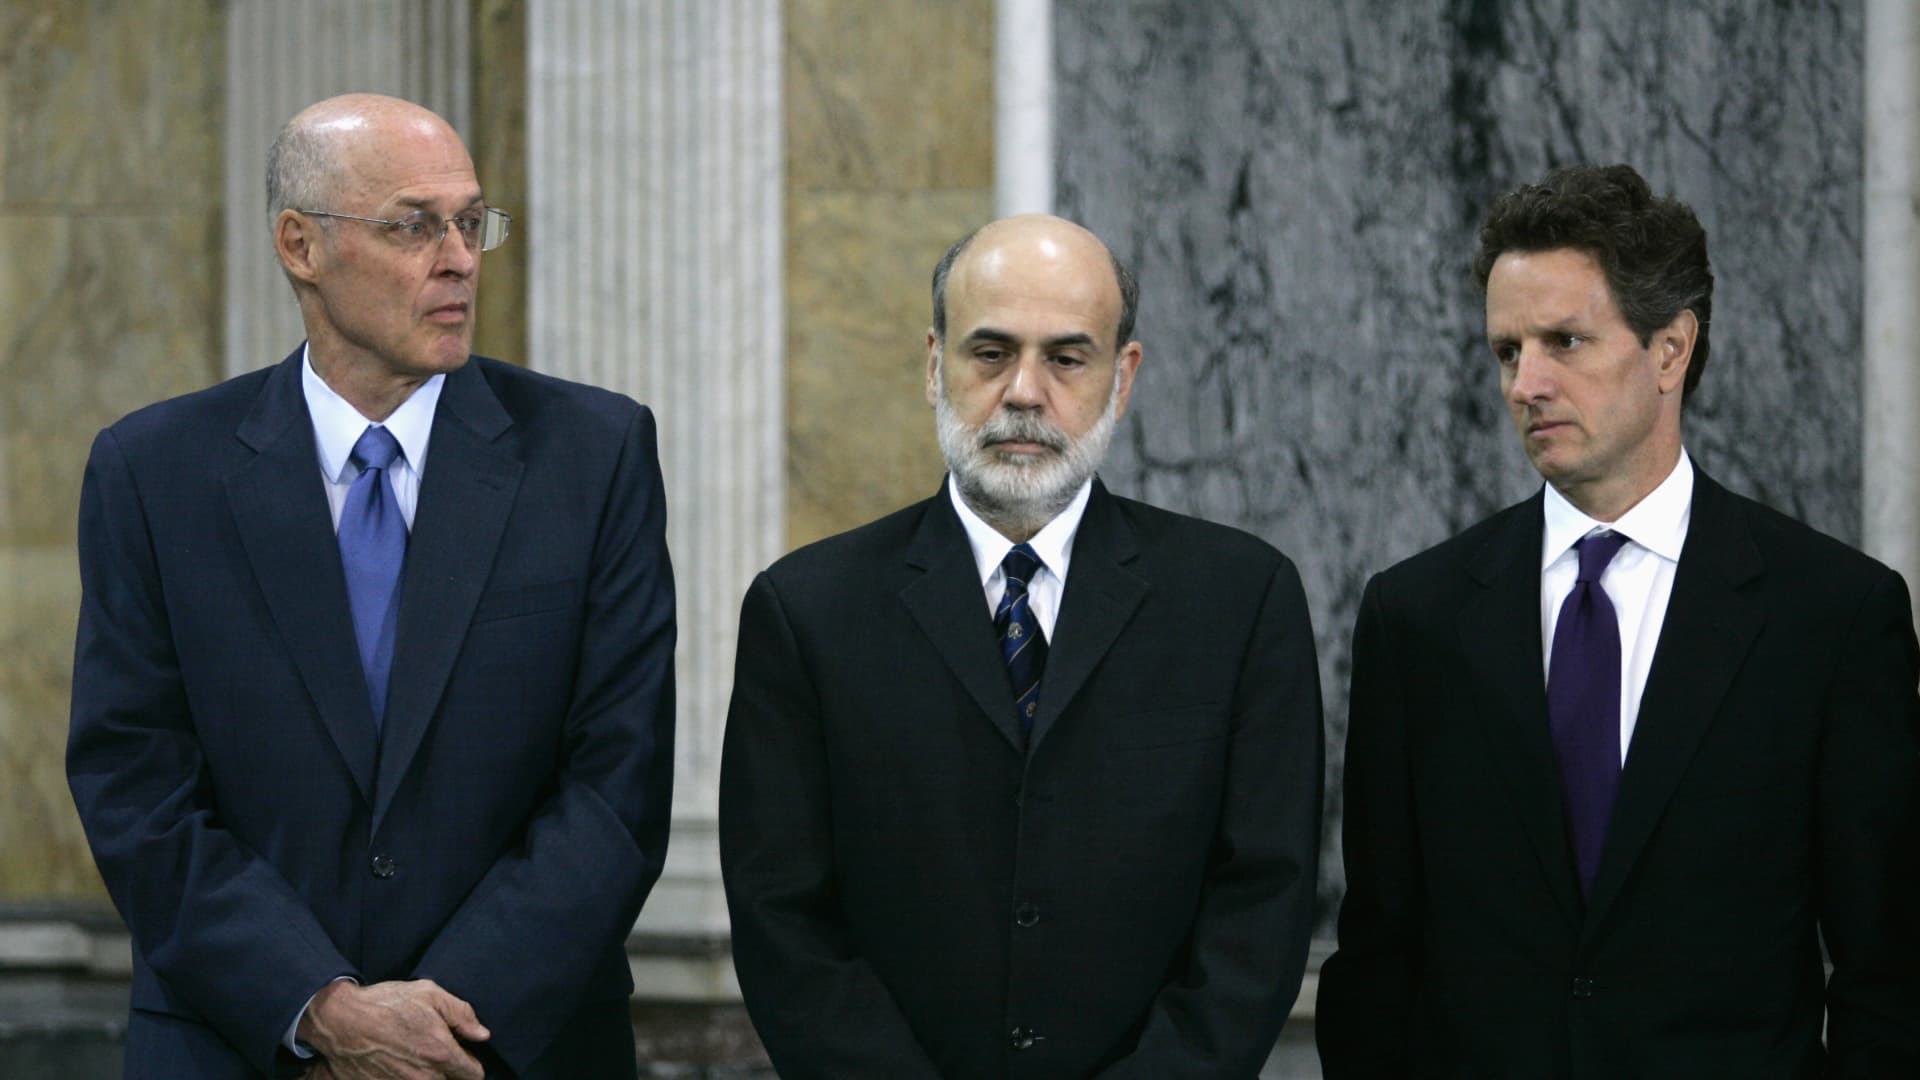 U.S. Treasury Secretary Henry Paulson (L), Federal Reserve Chairman Ben Bernanke (C) and President and CEO of the Federal Reserve Bank of New York Timothy F. Geithner listen as FDIC Chairman Sheila Bair (not pictured) speaks at the Treasury Department Cash Room in Washington, October 14, 2008.